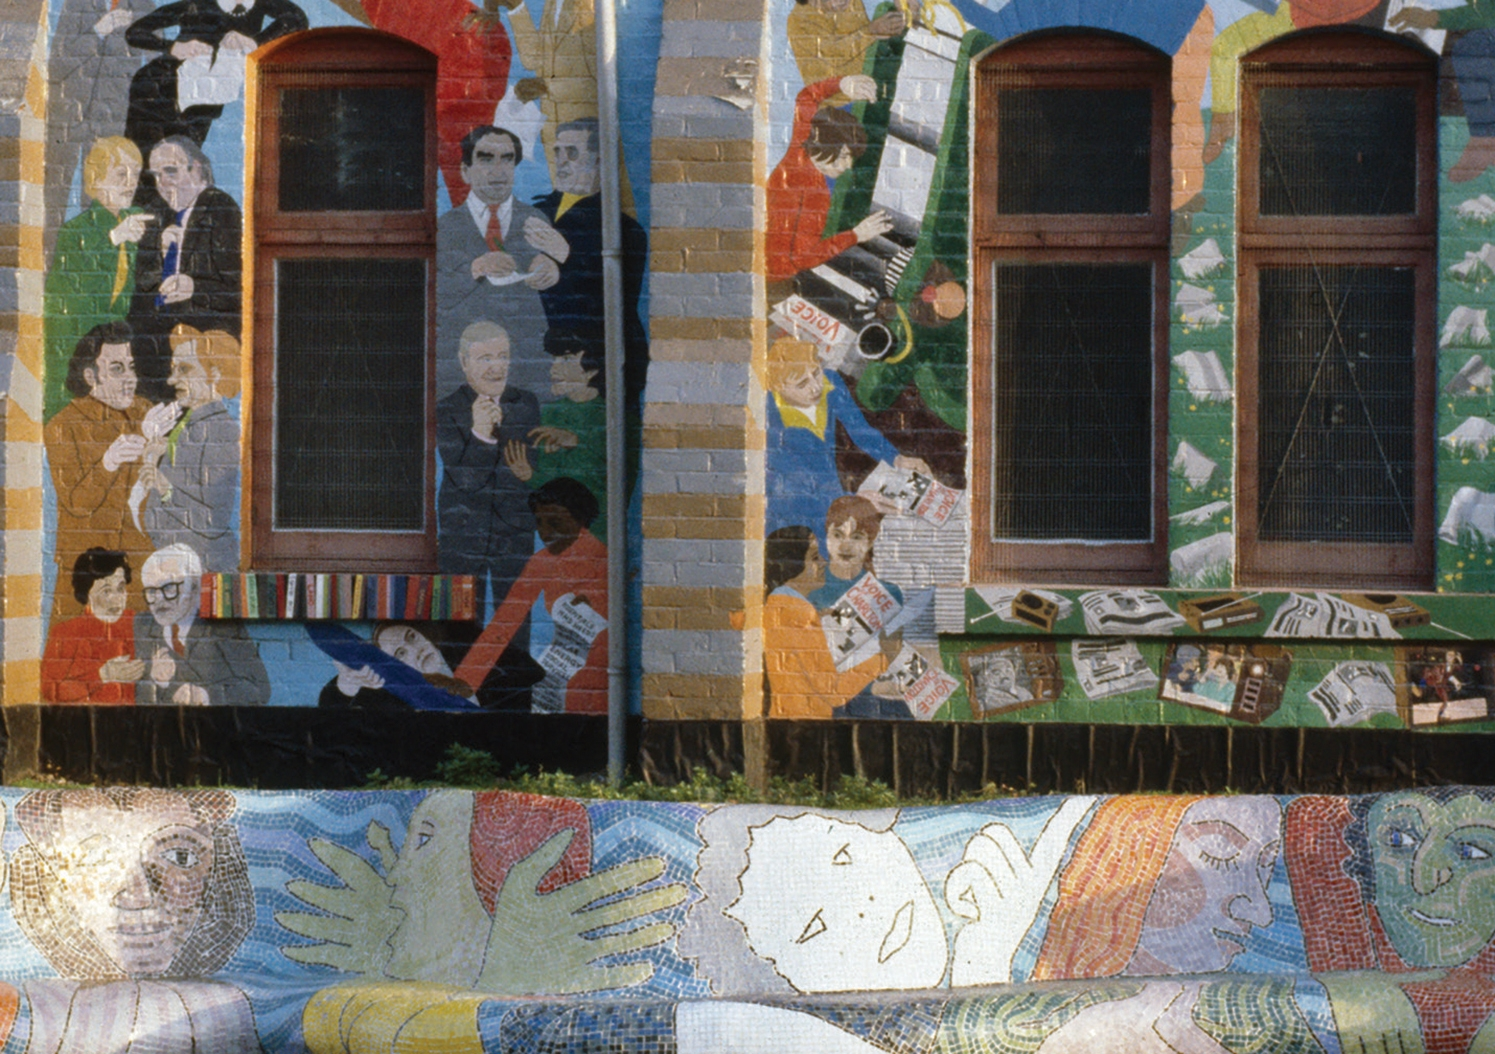 Picture of a wall and bench decorated with street murals